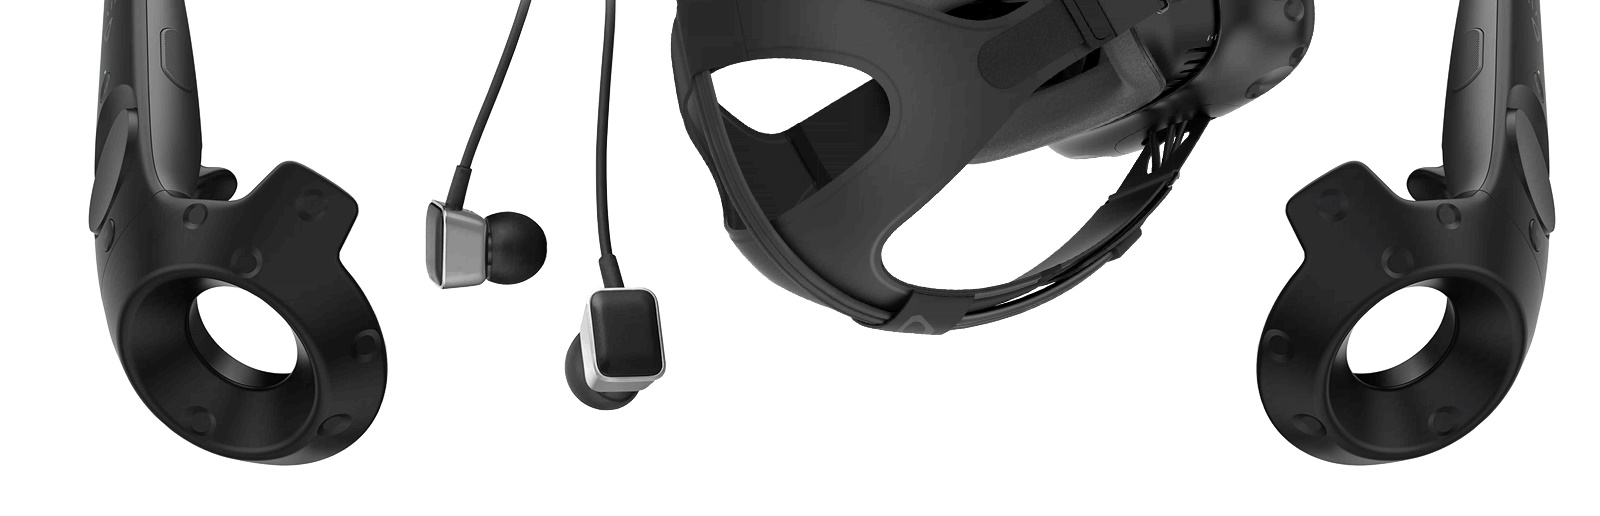 You can now buy replacement parts for the HTC Vive